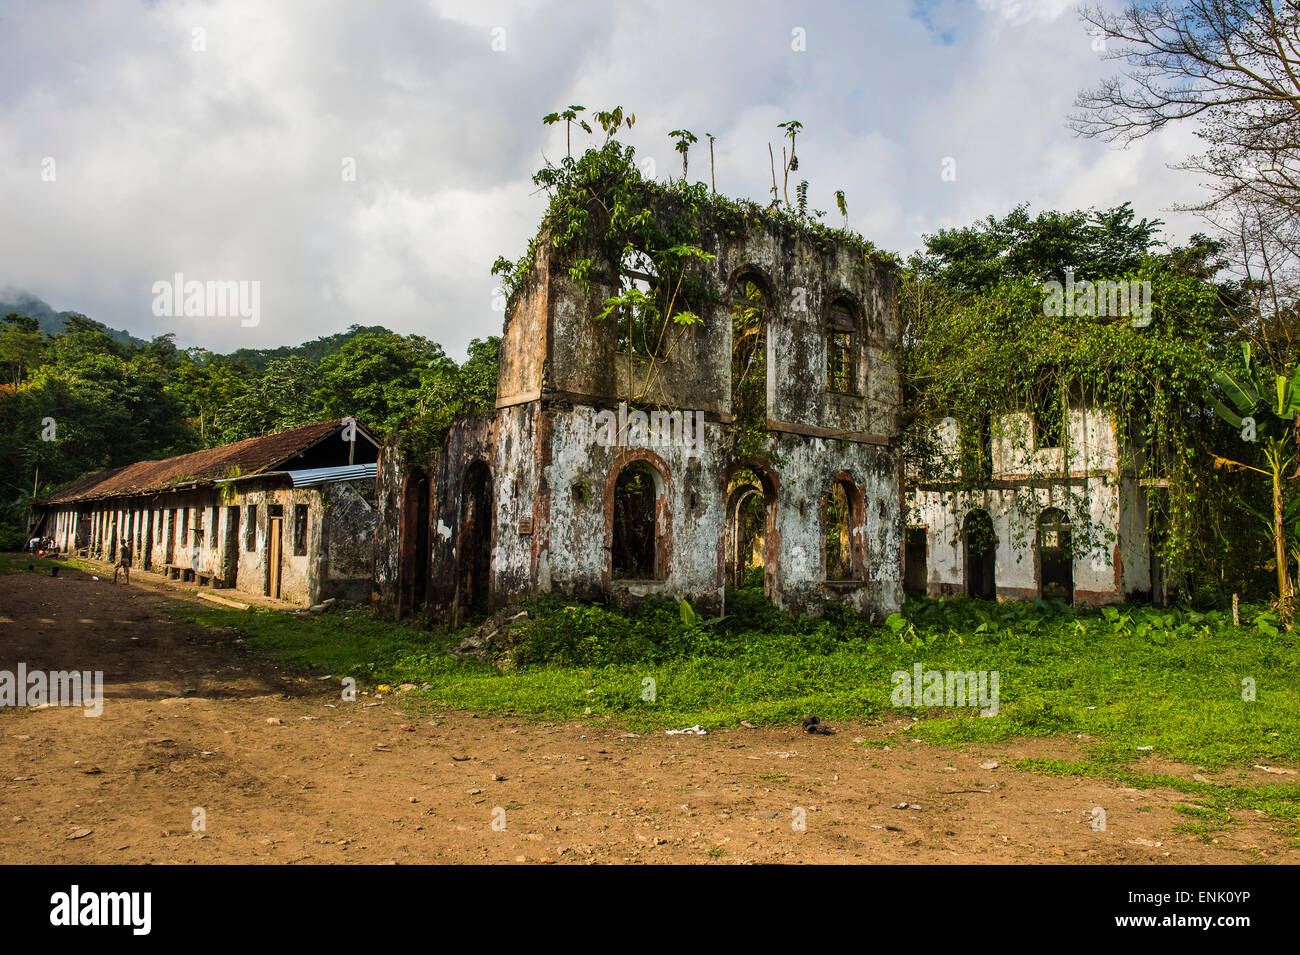 Decaying houses in the old plantation Roca Bombaim in the jungle interior of Sao Tome, Sao Tome and Principe, Atlantic - Stock Image